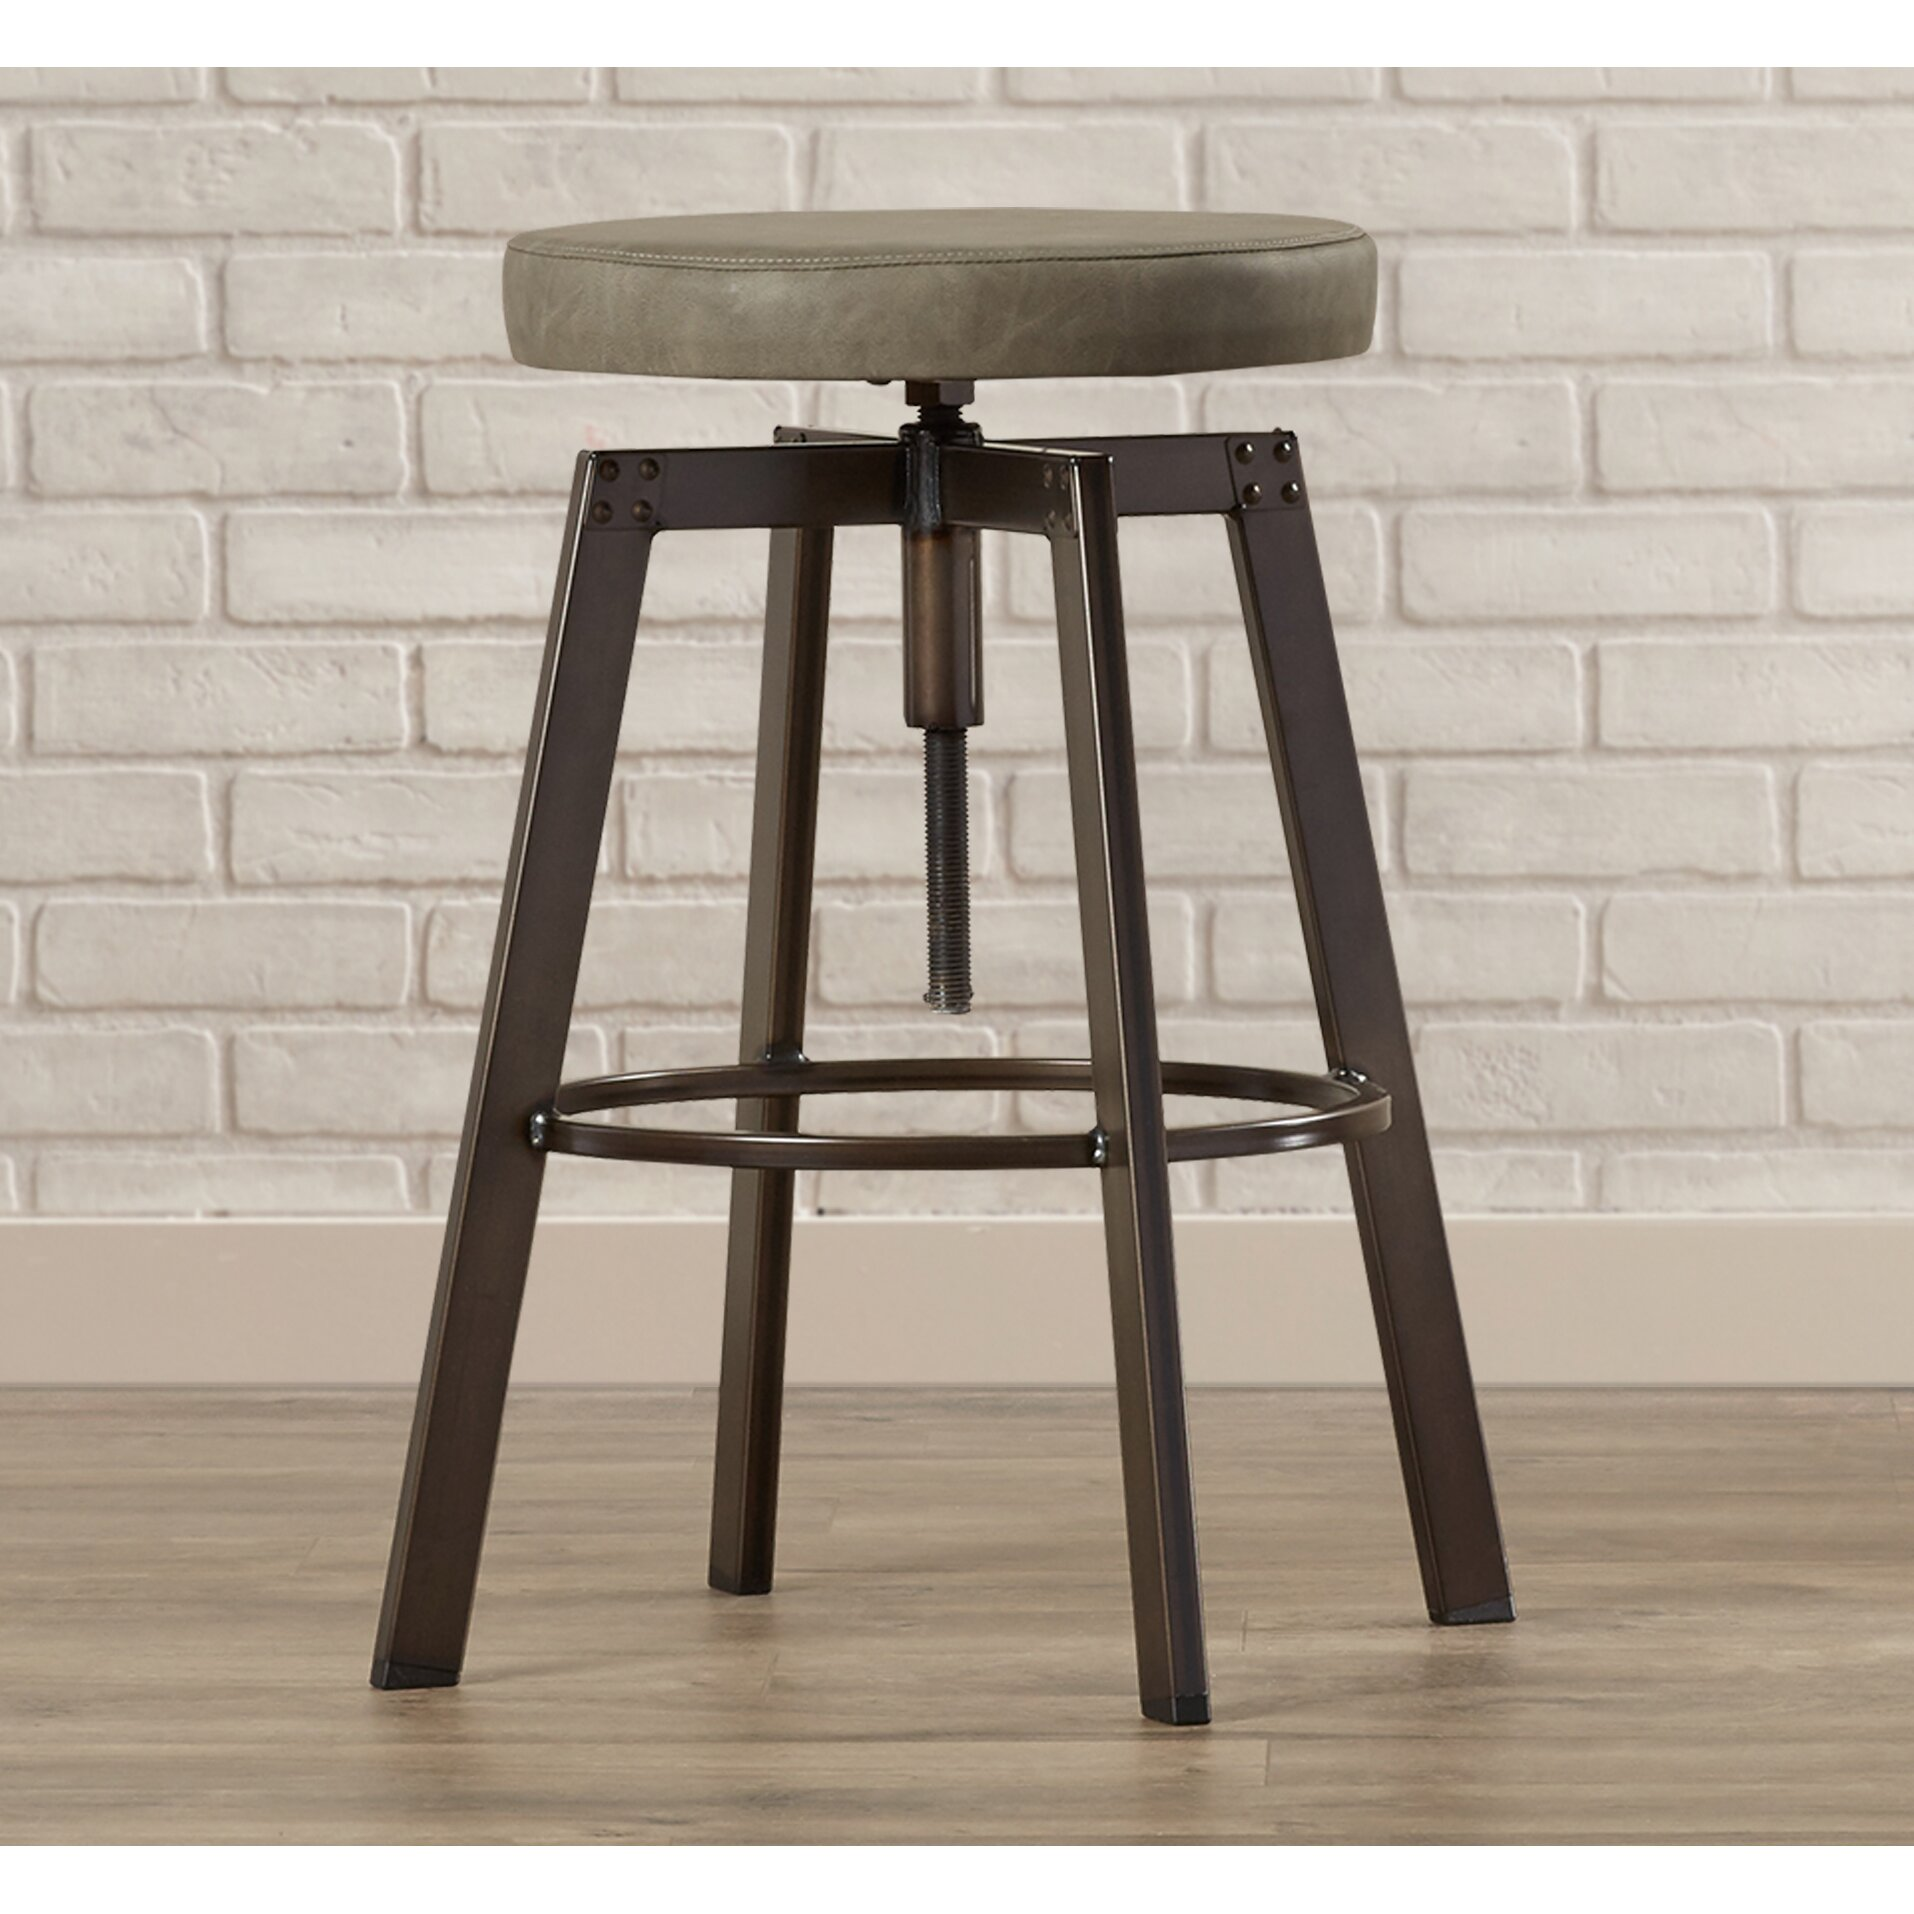 #786553 Trent Austin Design Chasewych Adjustable Height Bar Stool Wayfair with 1914x1914 px of Recommended Tall Bar Bench 19141914 save image @ avoidforclosure.info